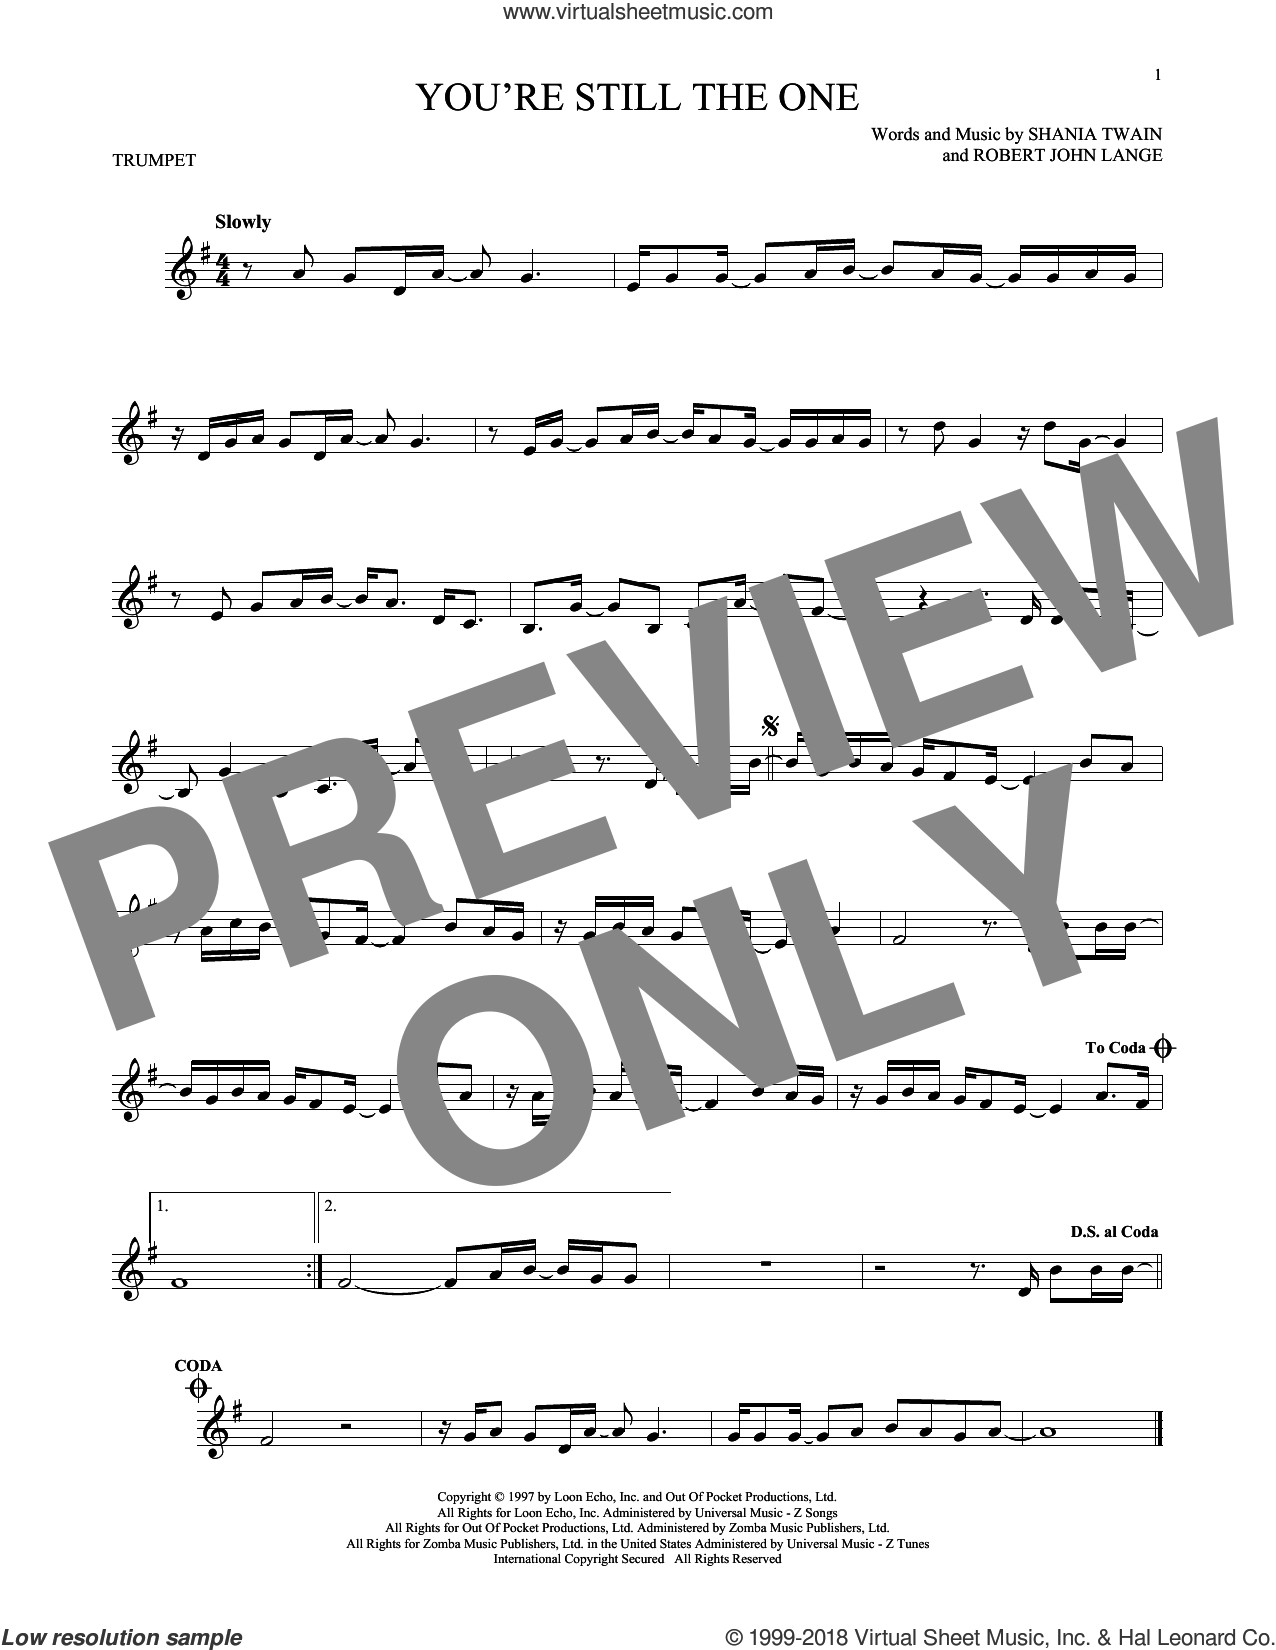 You're Still The One sheet music for trumpet solo by Shania Twain and Robert John Lange, intermediate skill level